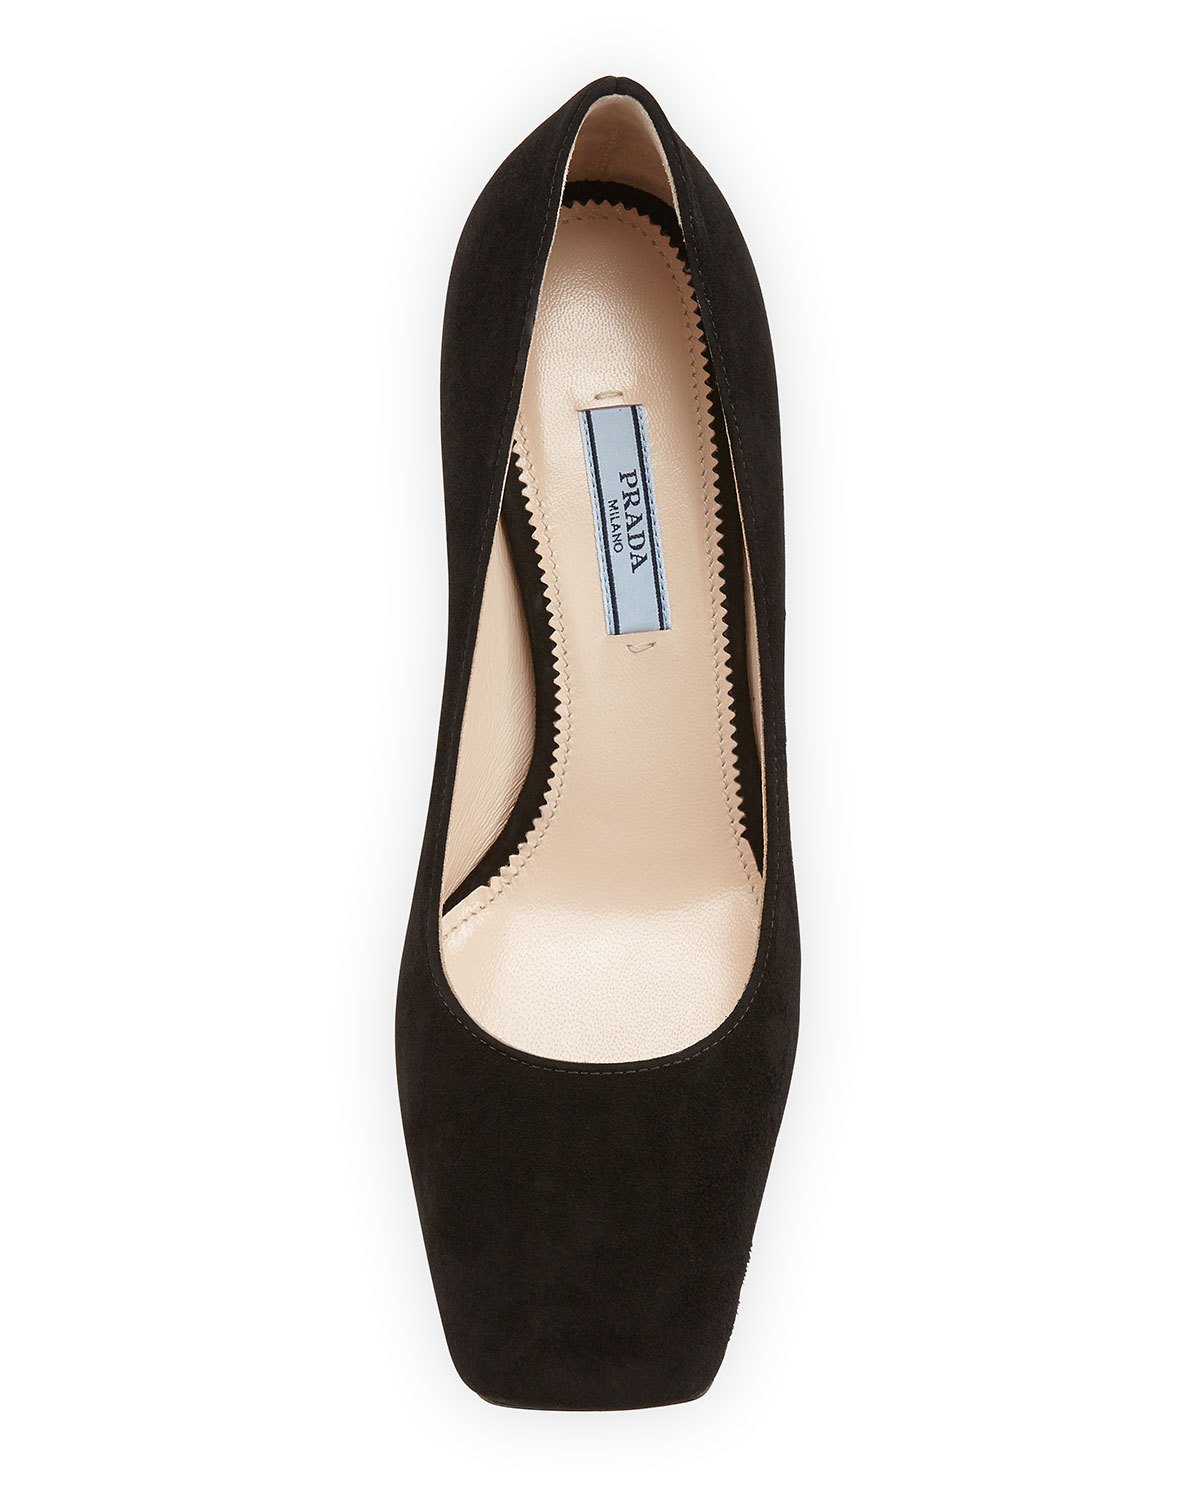 cheapest price discount latest Prada Suede Square-Toe Flats discount shop offer sale Manchester cheap many kinds of hUw3fuY